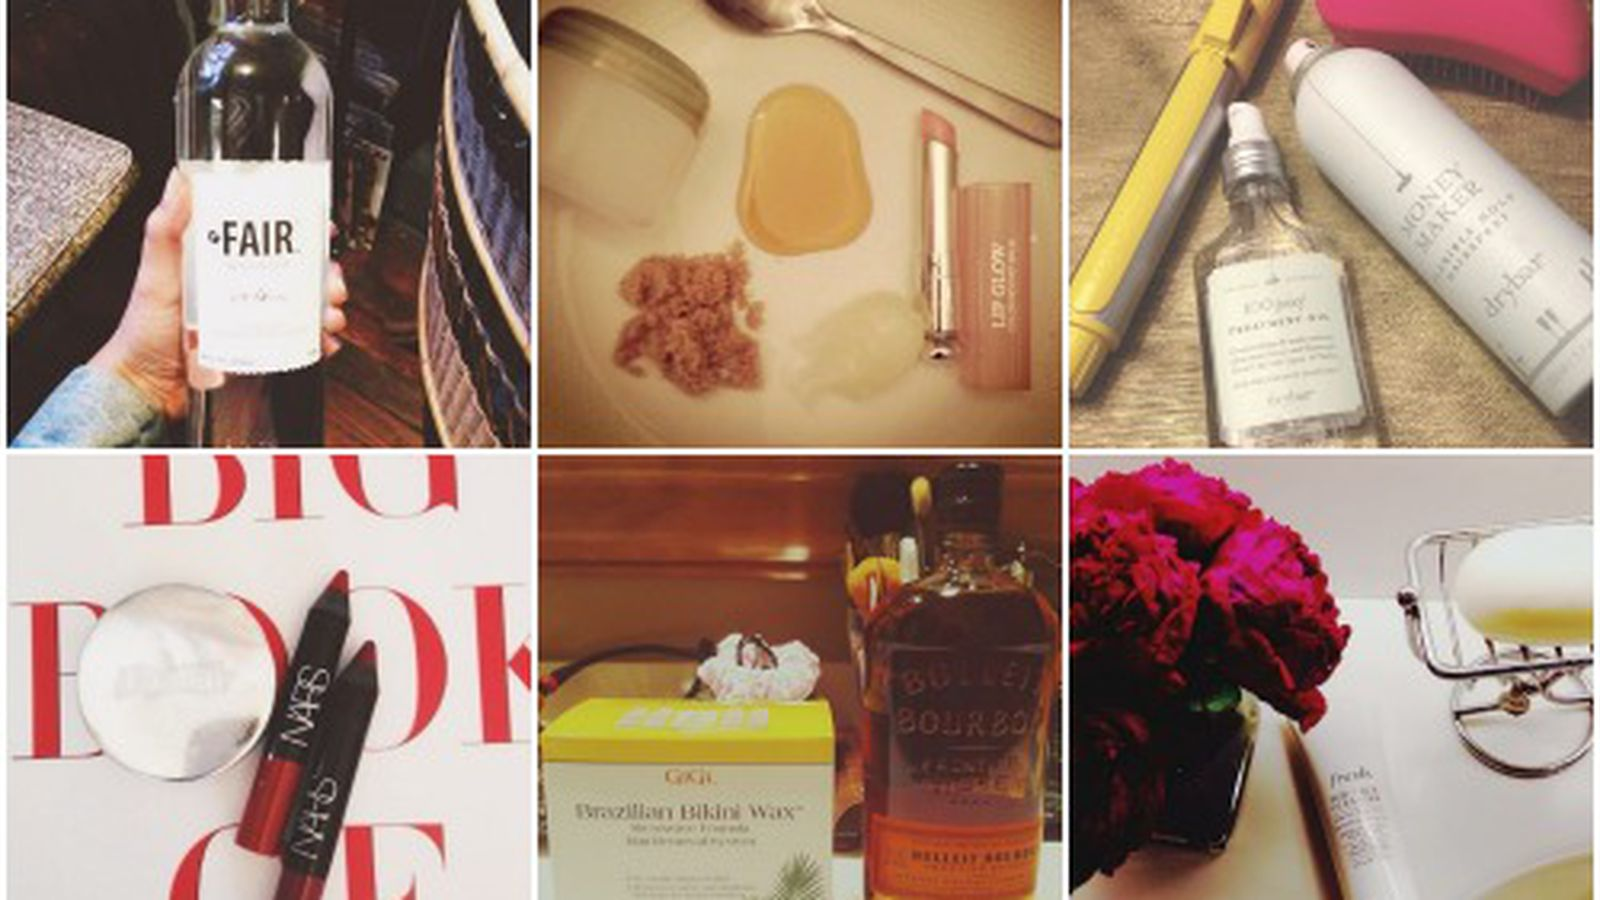 The Best Beauty Products Tips And Tricks Of 2013 Racked Ny